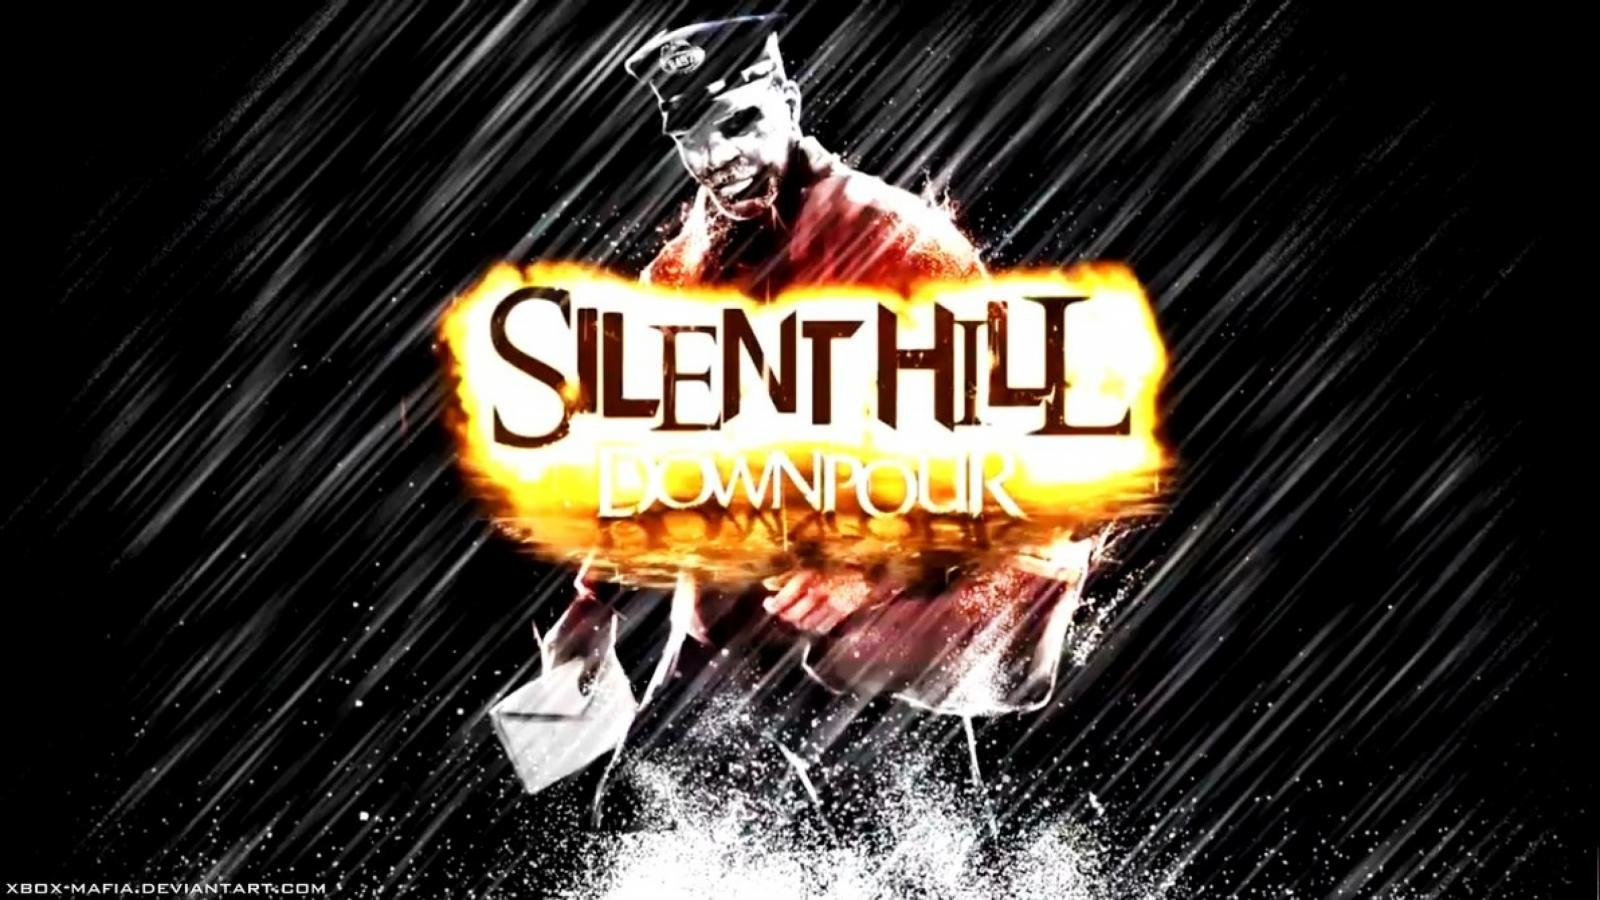 Download hd 1600x900 Silent Hill desktop wallpaper ID:53996 for free